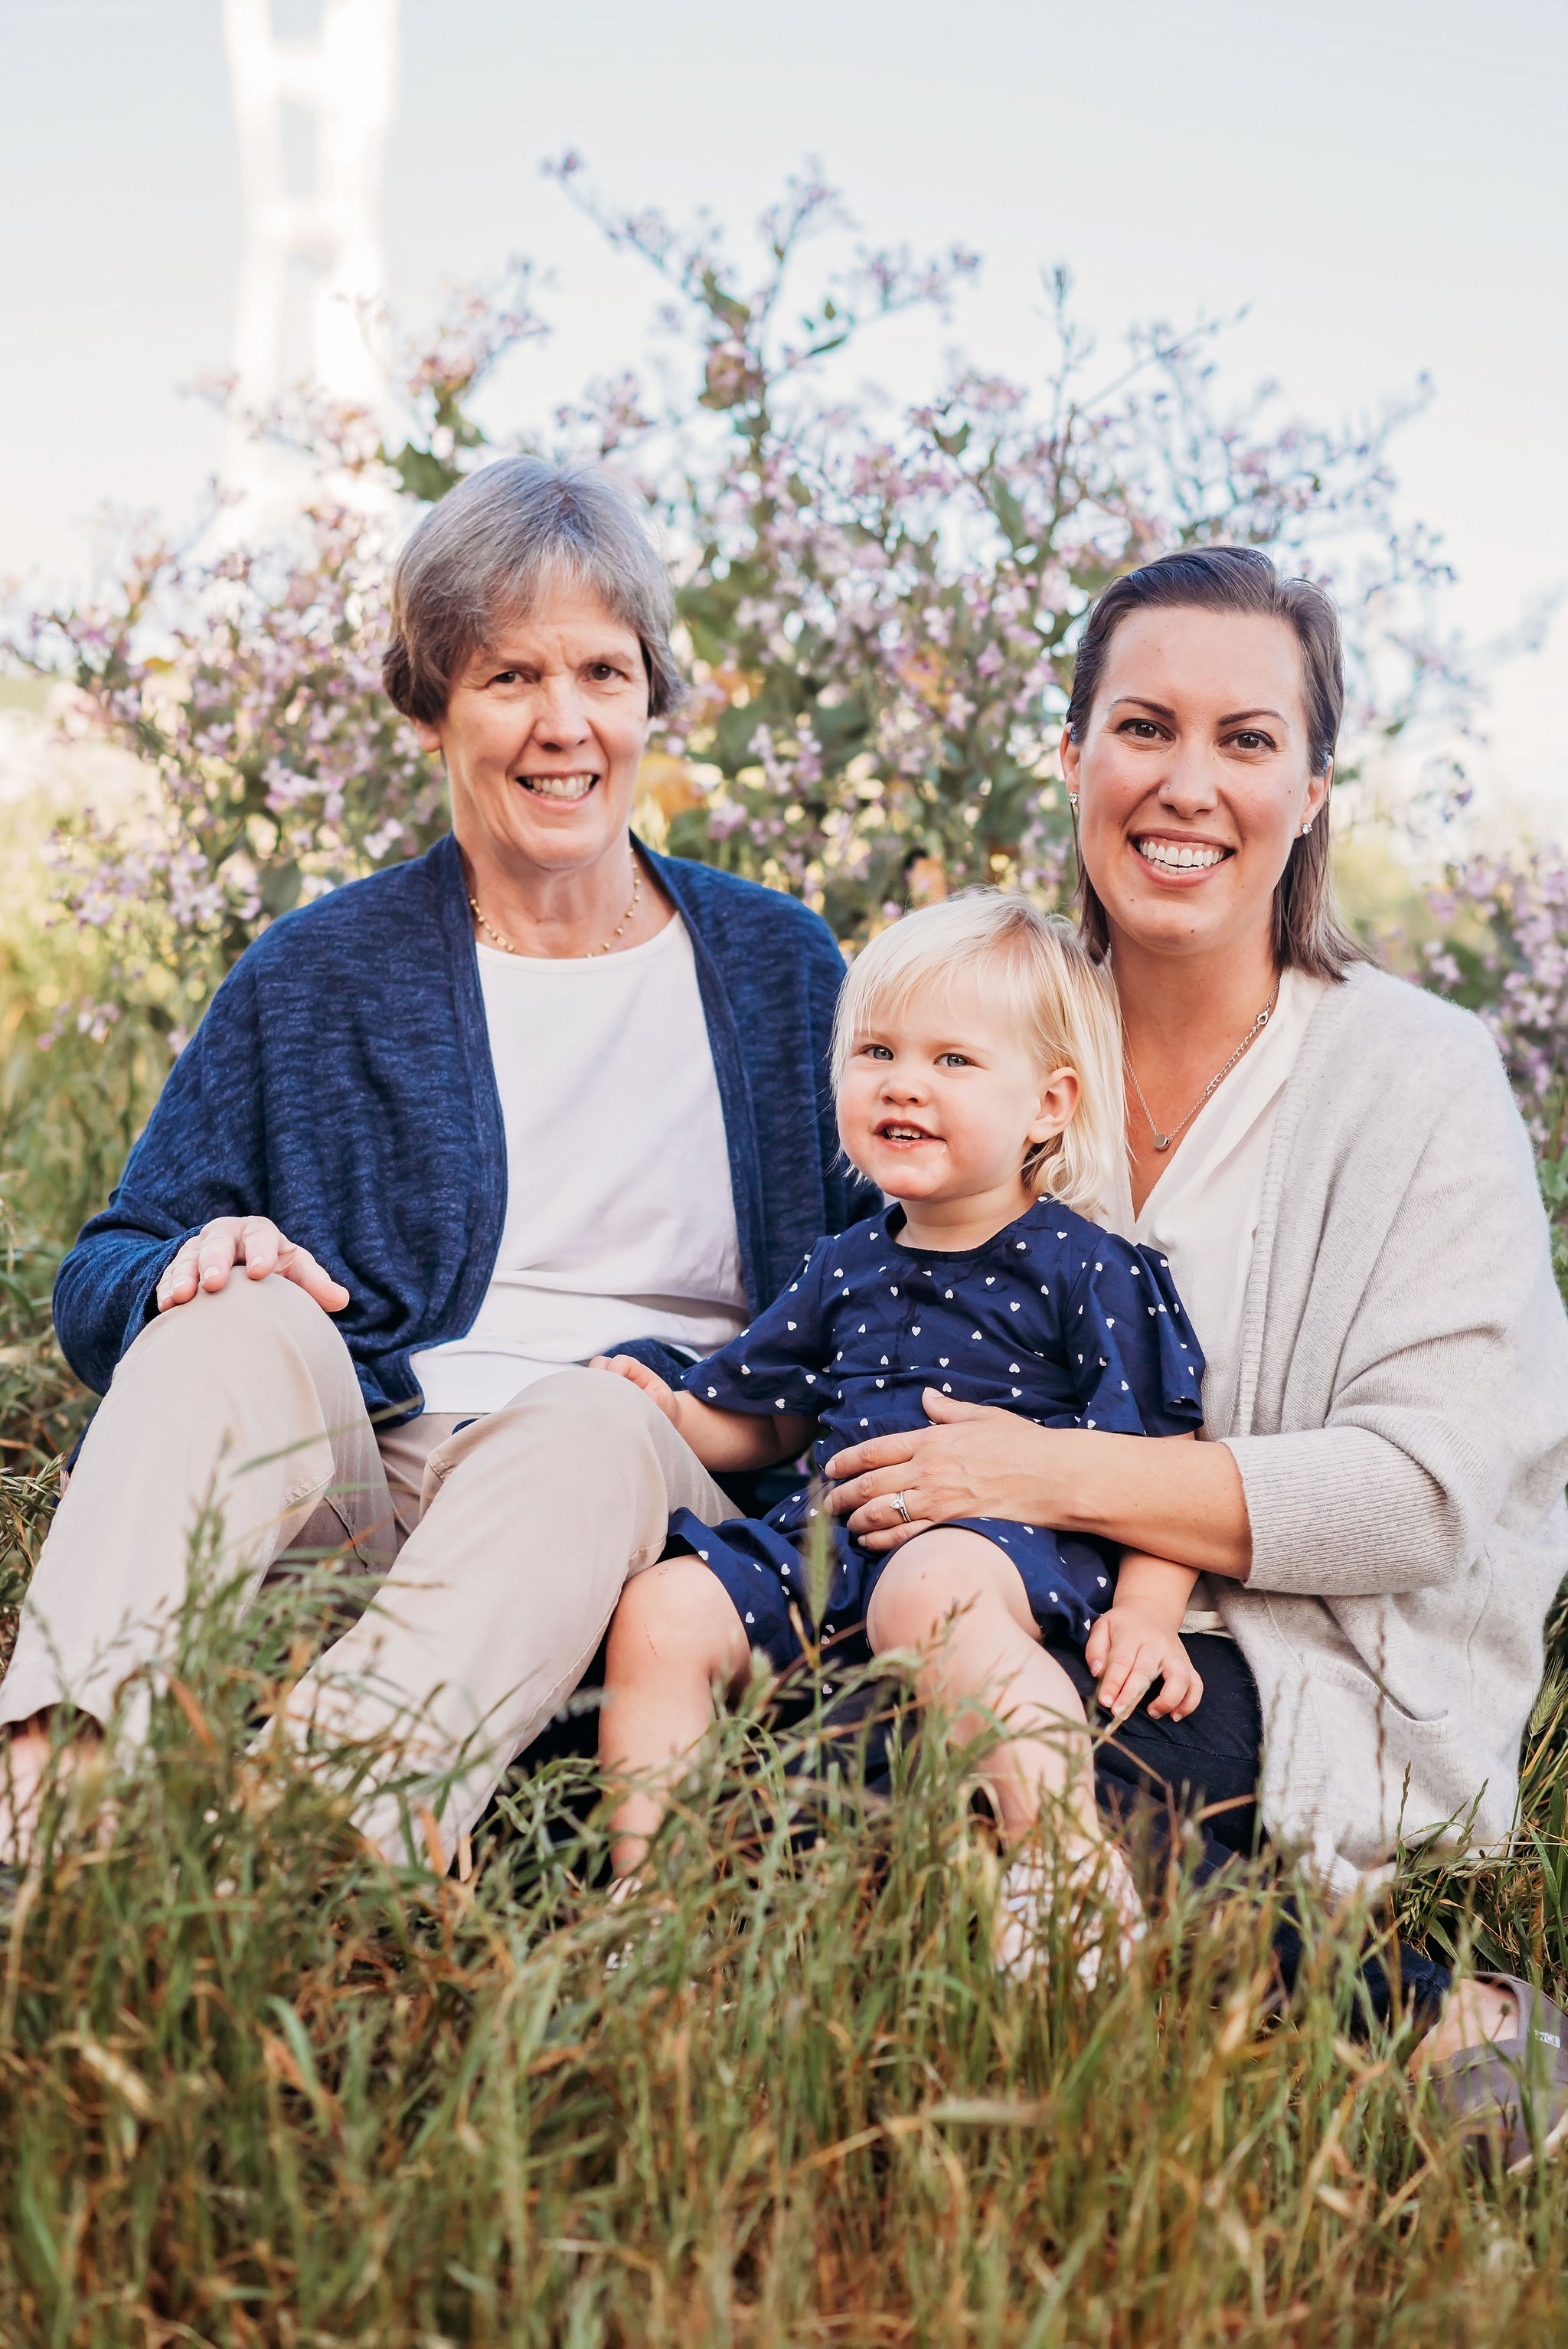 I love this three-generation photo! The two colors in their palette were navy and cream; this was balanced out by having Grandma in a navy cardigan, Mom in a cream shirt + sweater, and sweet Daughter in her navy polk-a-dots. Another example of why you only need one patterned piece in a photo!